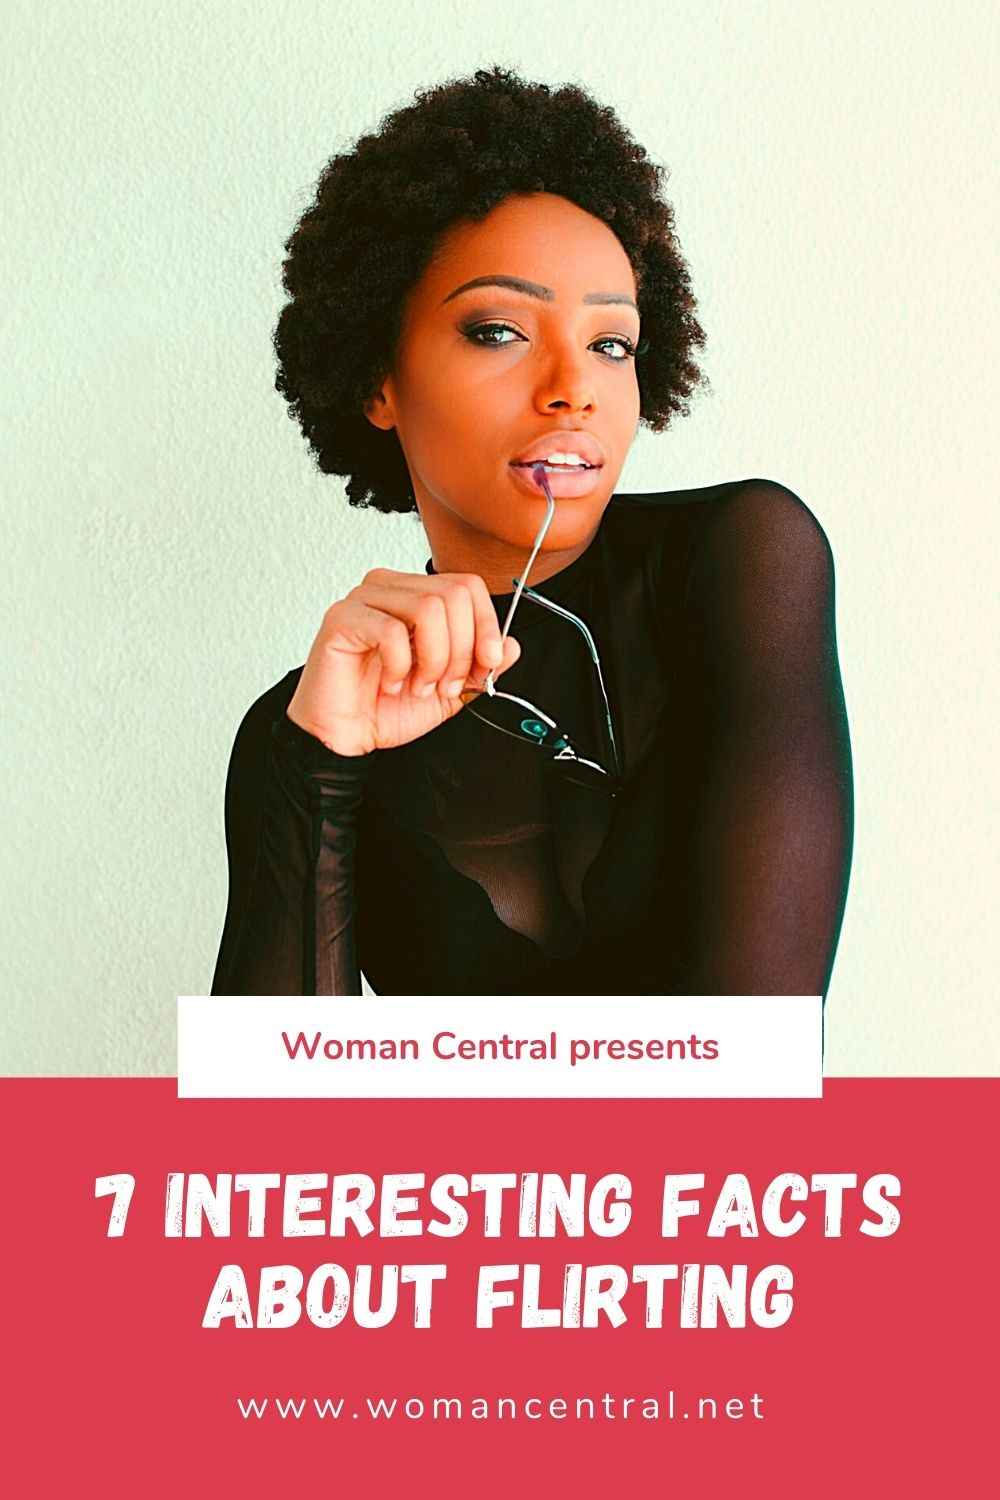 7 Interesting Facts About Flirting